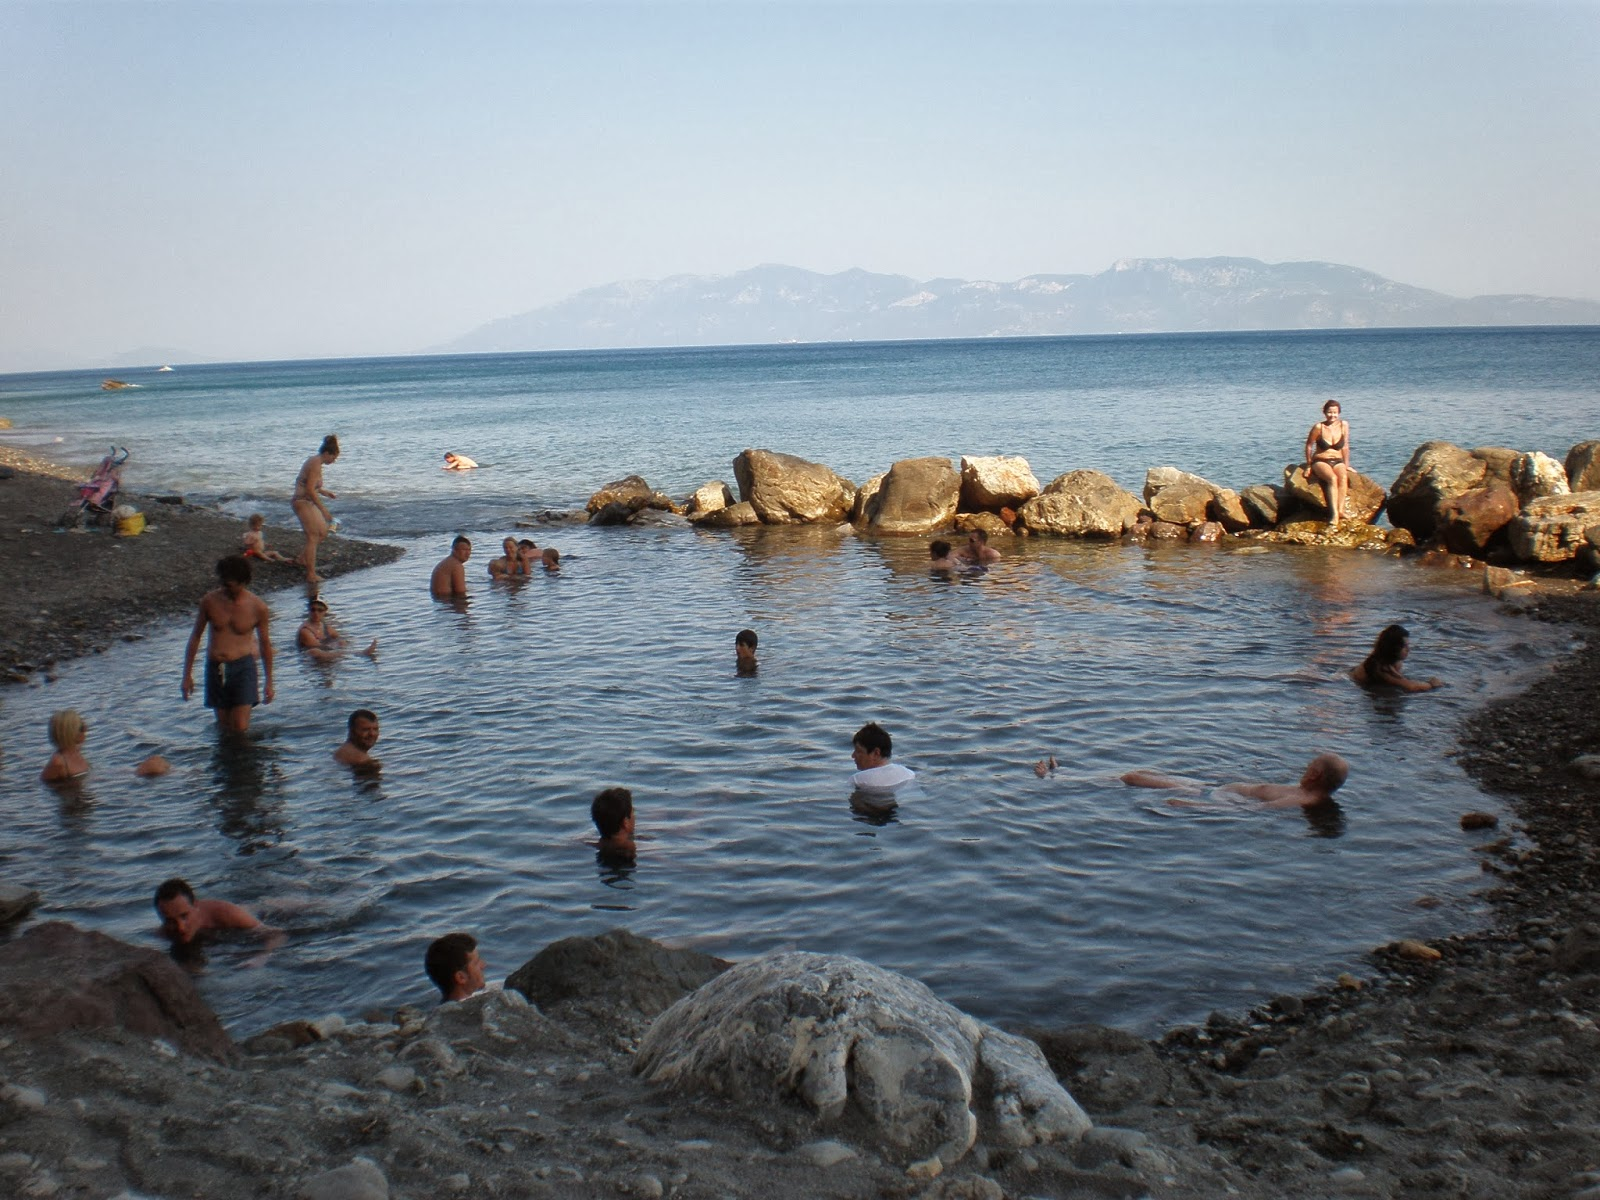 thermal beach, therma beach, bubble beach, hot springs, beach, relax, sea, sun, sand, holiday, Kos, Greece, Europe, traditional church, view, mountain, zia, lambi, kos town, beautiful view, travel, travelling, holiday, sea, sun,